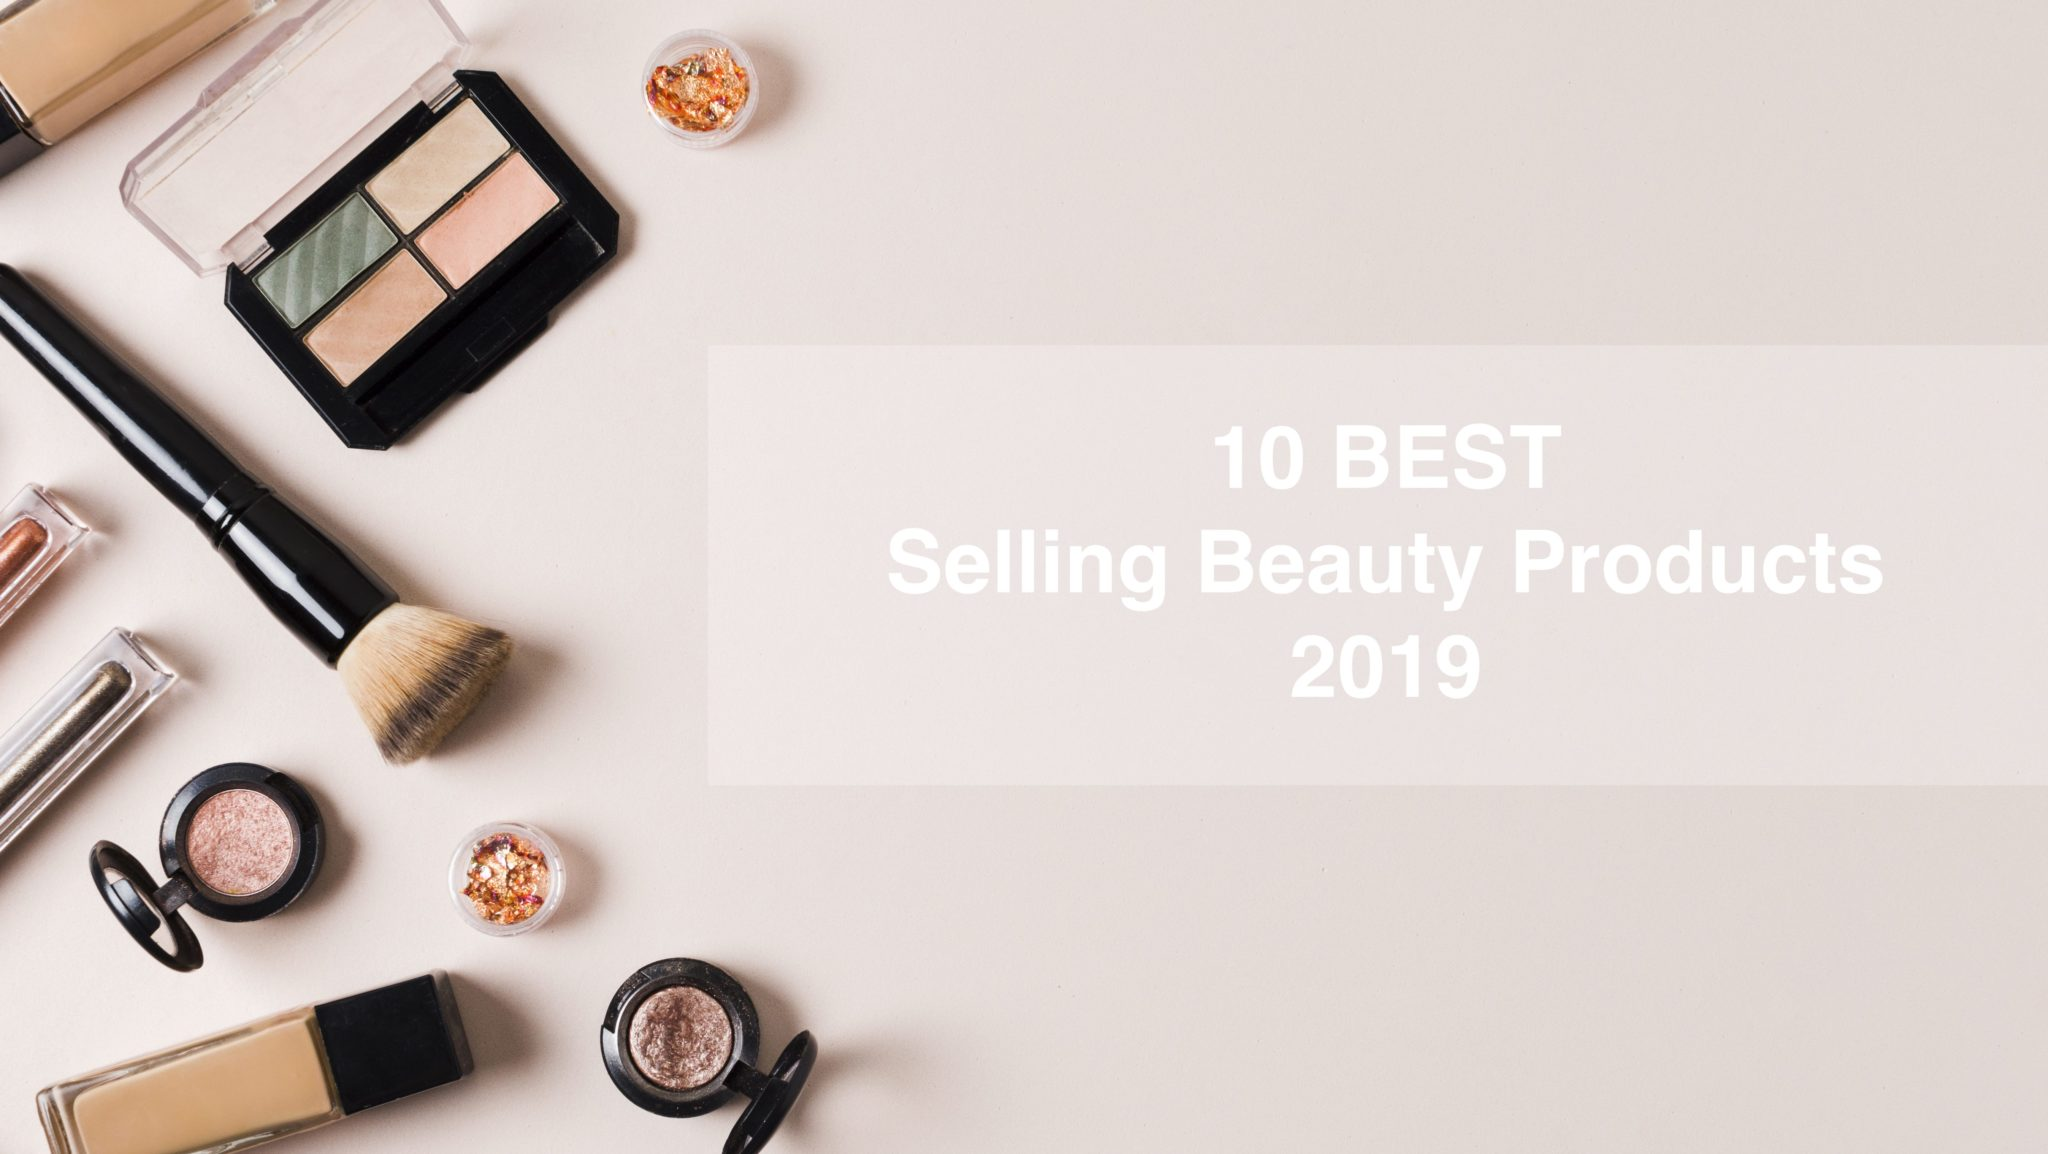 Photo of 10 Best Selling Beauty Products